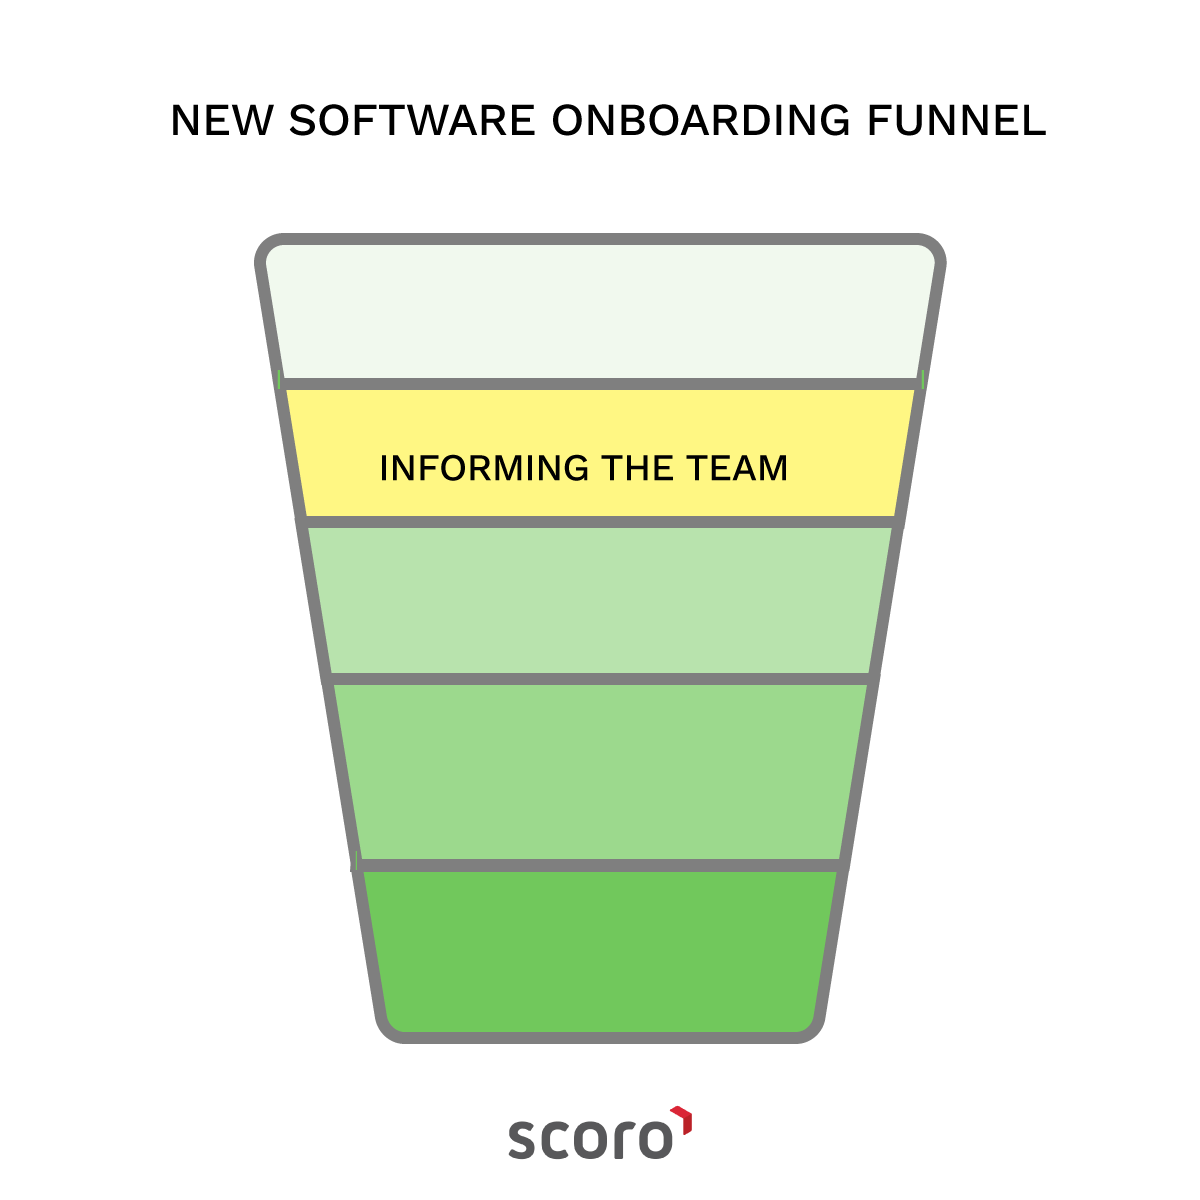 new software onboarding funnel informing team